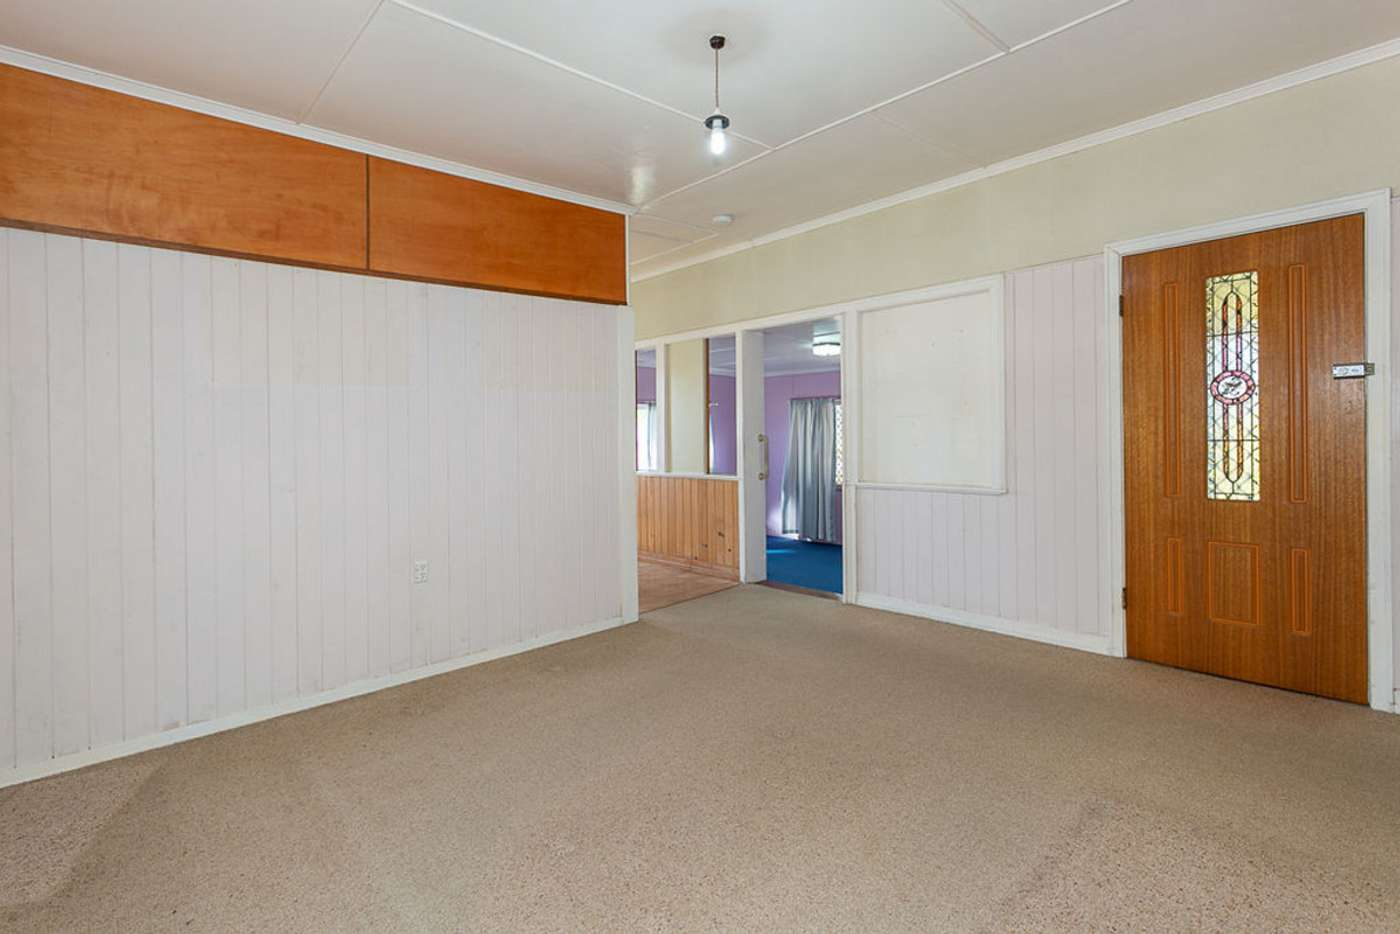 Sixth view of Homely house listing, 89 Stafford Street, Silkstone QLD 4304